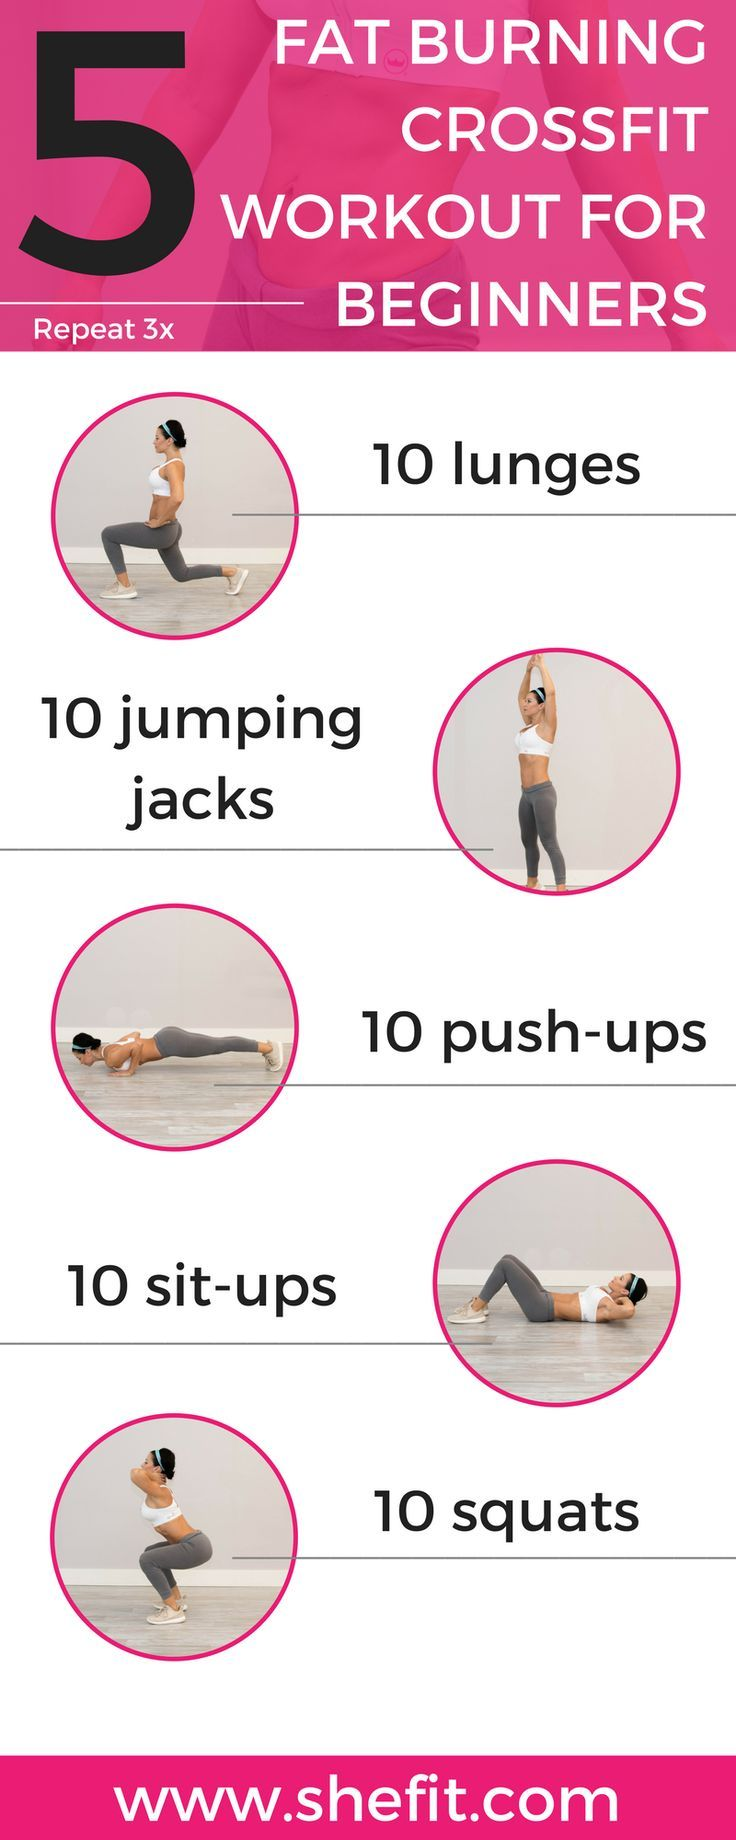 You don't have to be a high-level fitness athlete to perform CrossFit's high-intensity fitness routines. There are plenty of CrossFit workouts for beginners that will help you build muscle & get killer abs you've always wanted. CrossFit WODs guaranteed to increase your fat-burning potential + they done at-home – no equipment necessary. | Full Body Workout Outfits  for Women via #Shefit High Impact Sports Bra for Big Busts | Cute #SportsWear for Running | #ActiveWear for Large Breasts